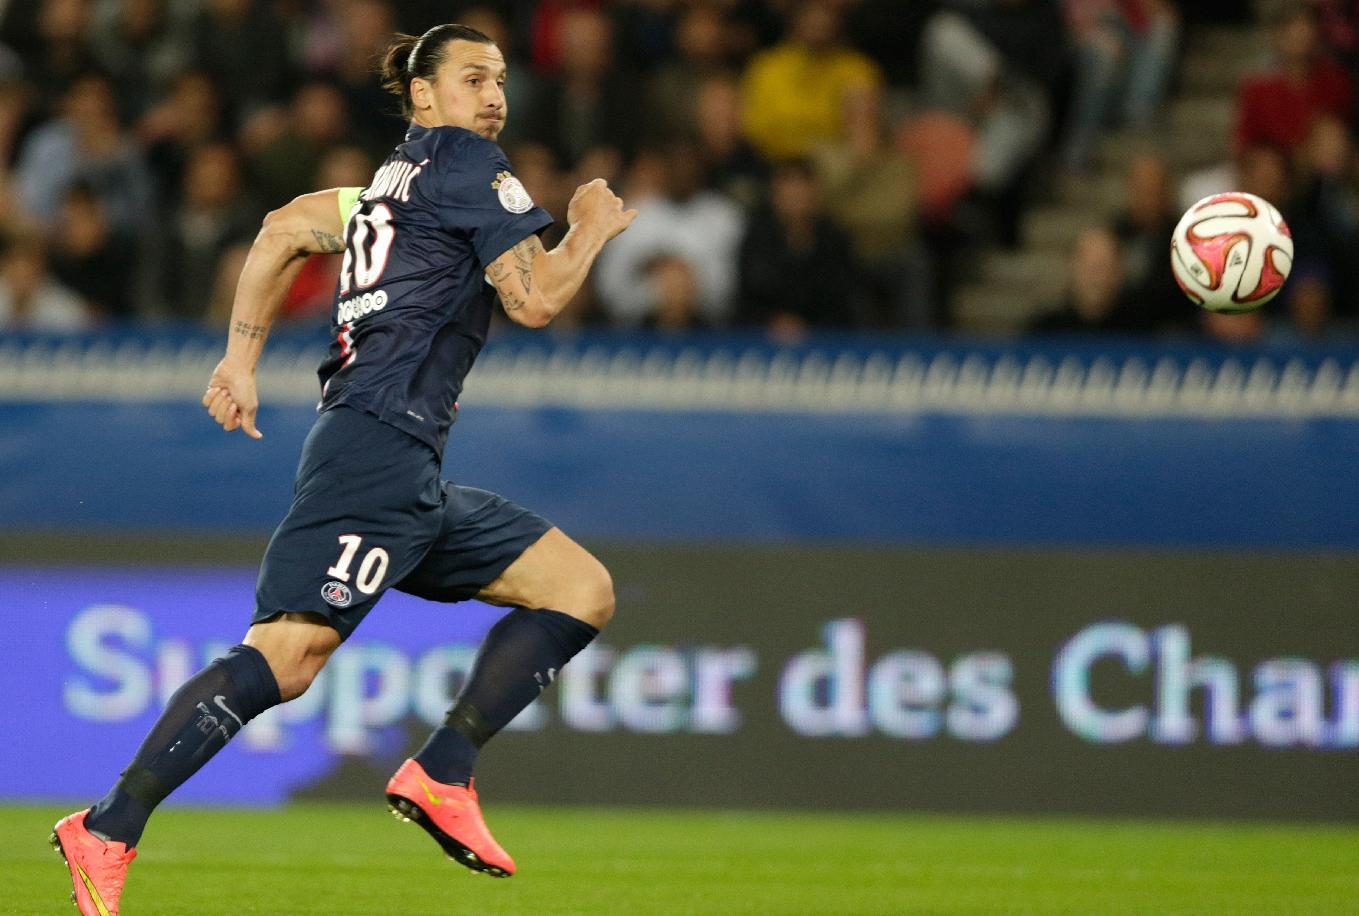 Paris Saint-Germain's Swedish midfielder Zlatan Ibrahimovic eyes the ball during a French L1 match against Lyon at the Parc des Princes stadium in Paris on September 21, 2014